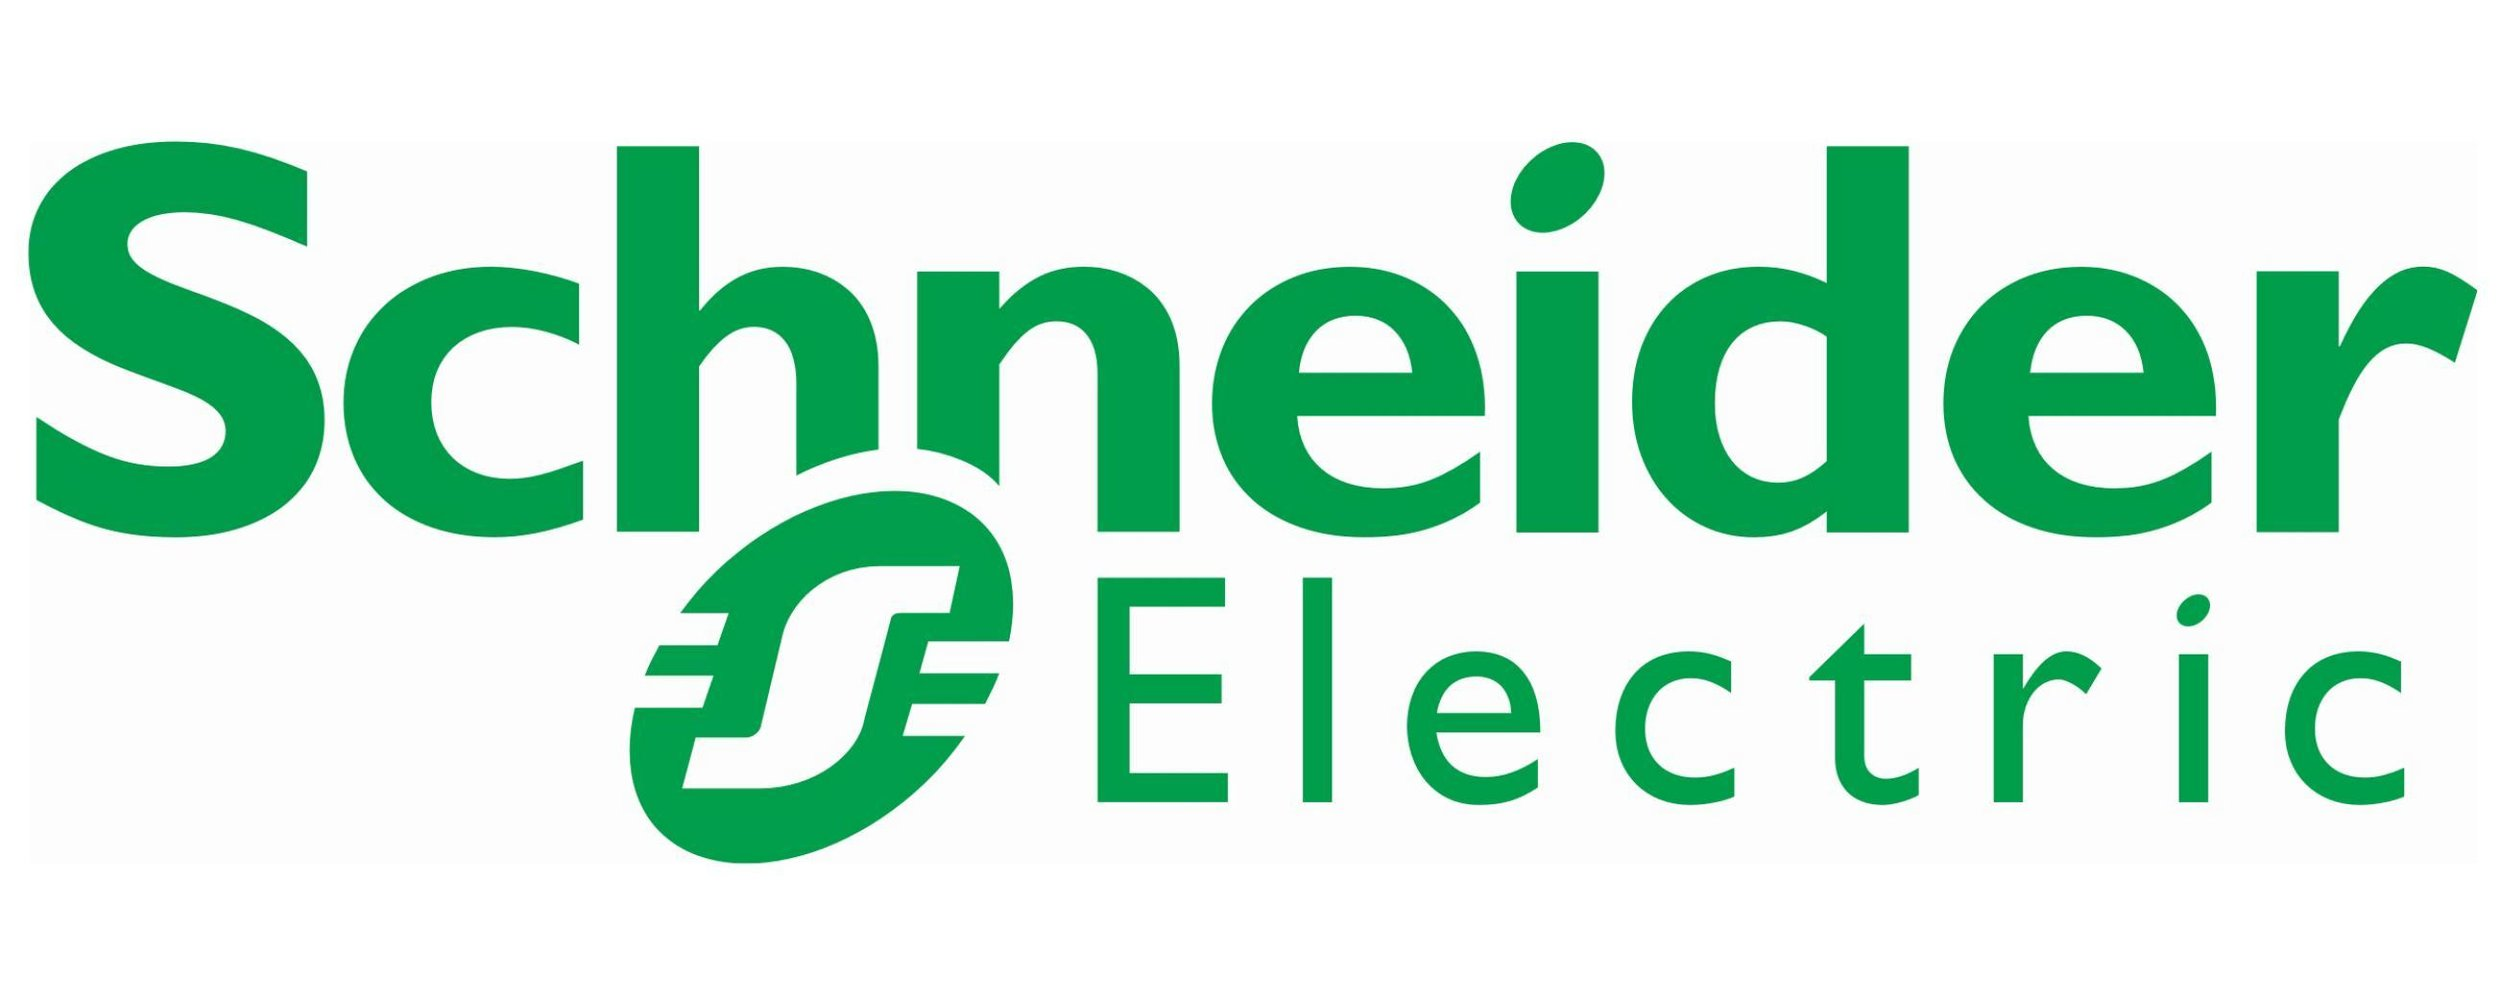 schneider-electric.jpg